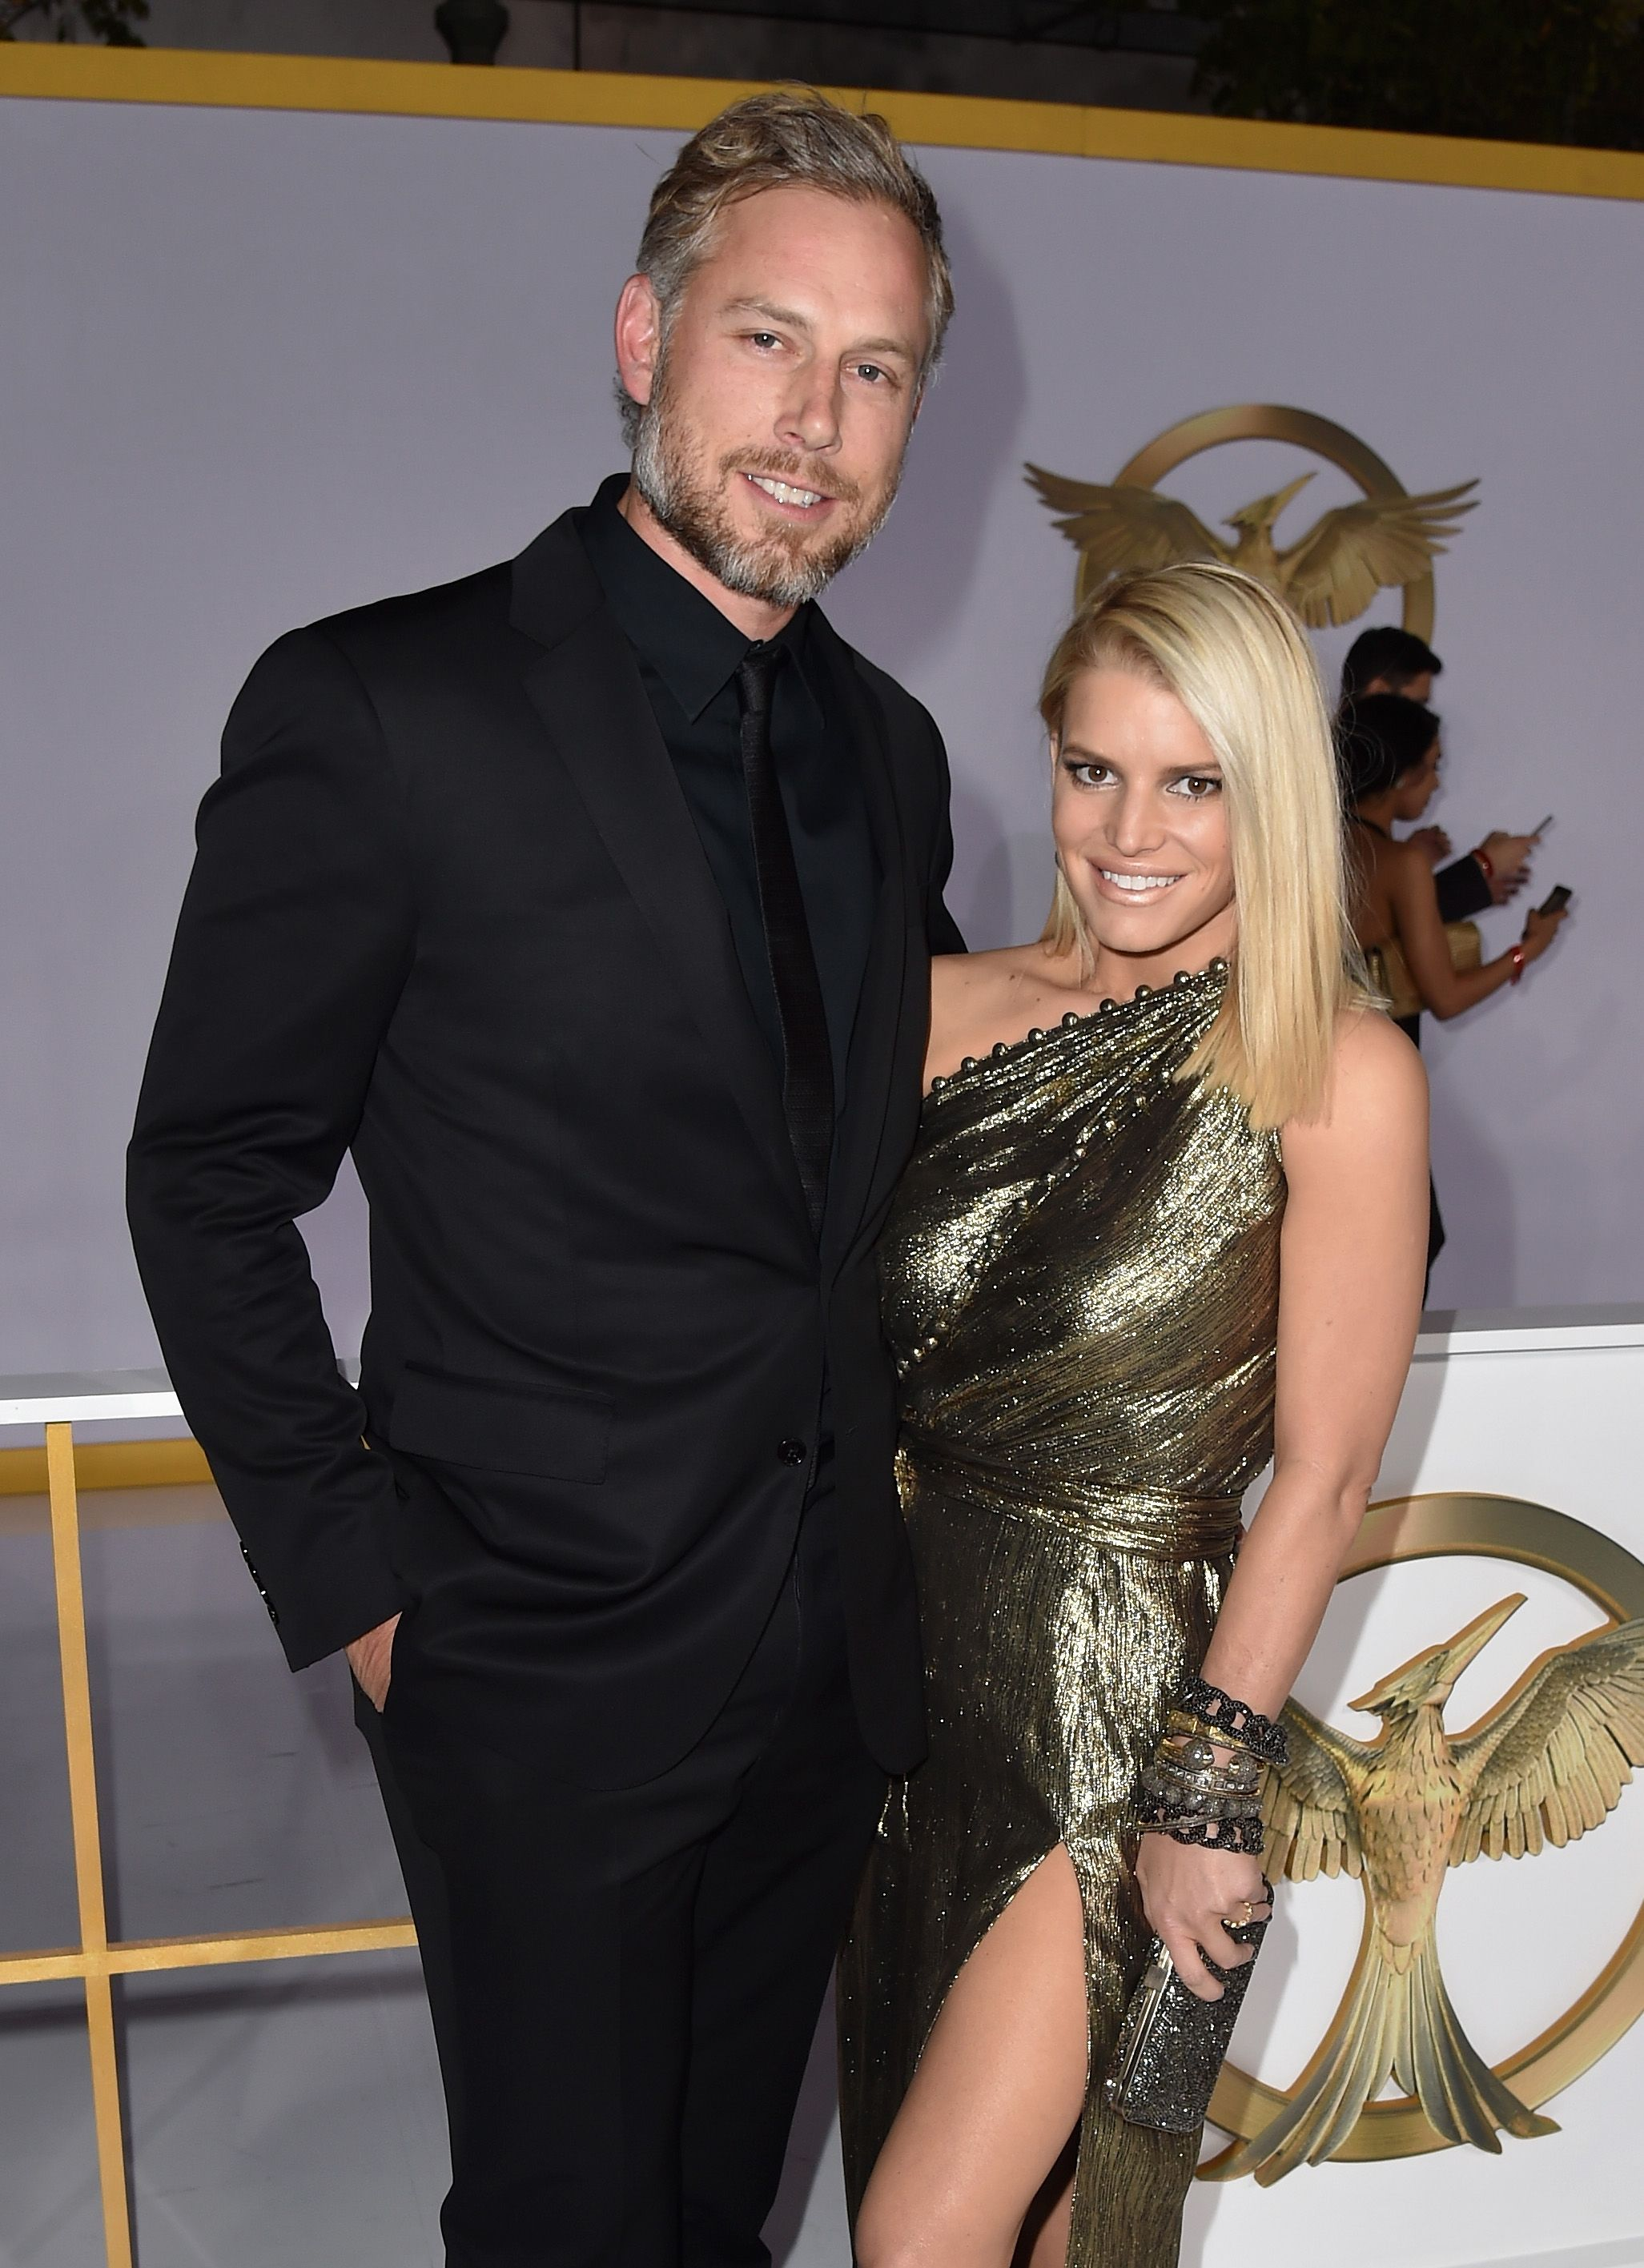 Jessica Simpson and husband at an event